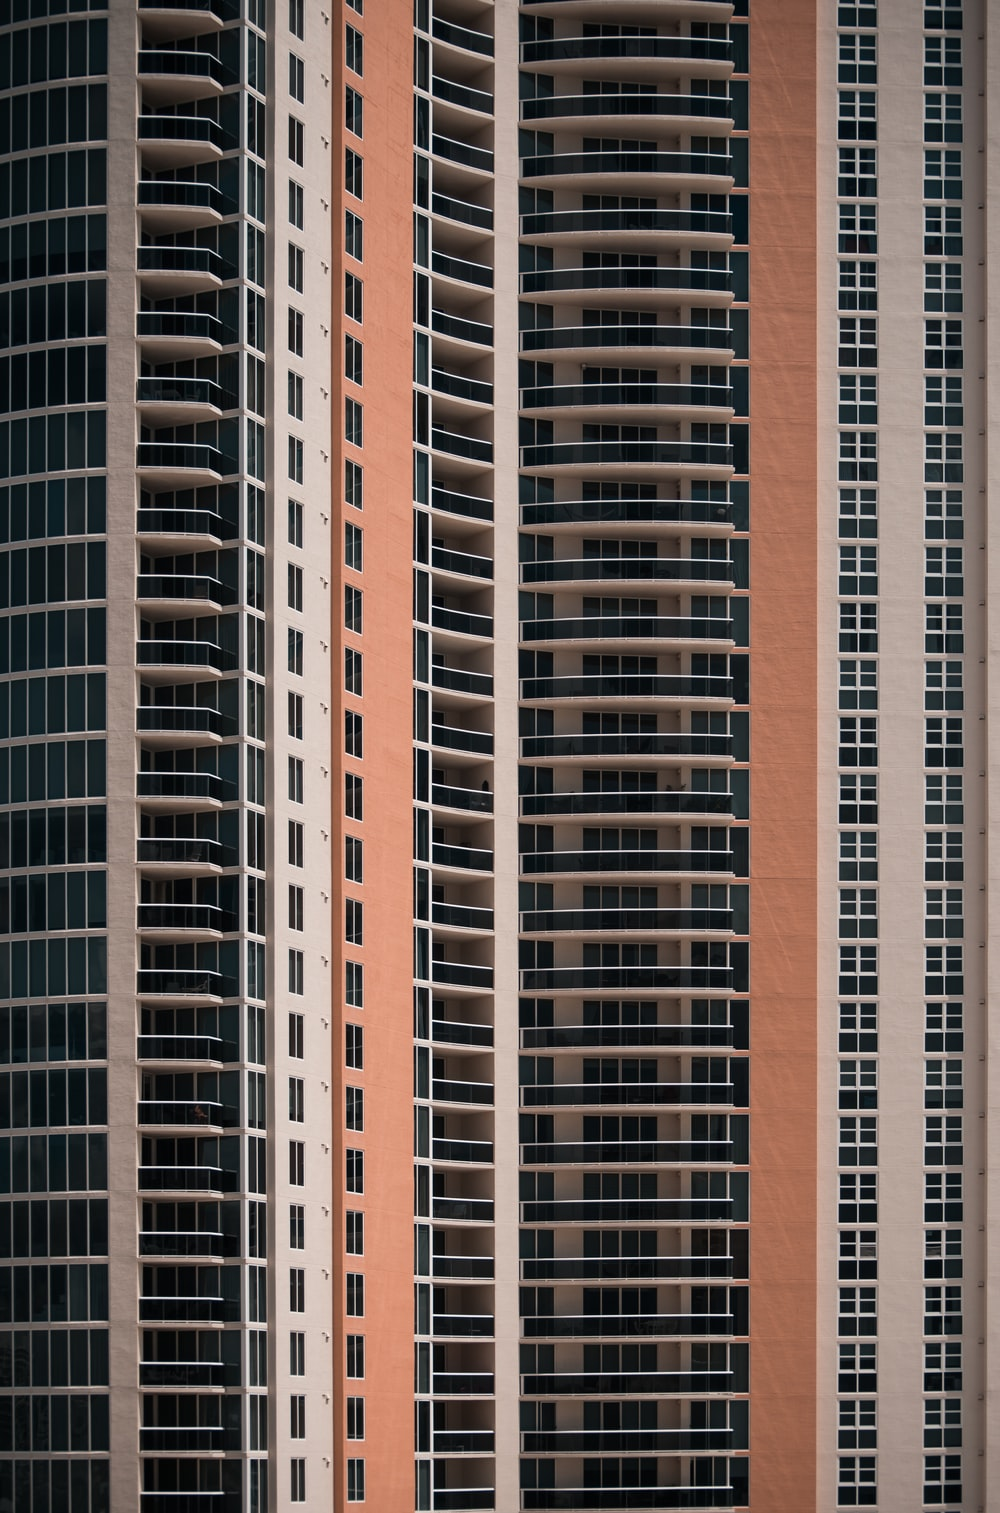 brown and black high-rise building